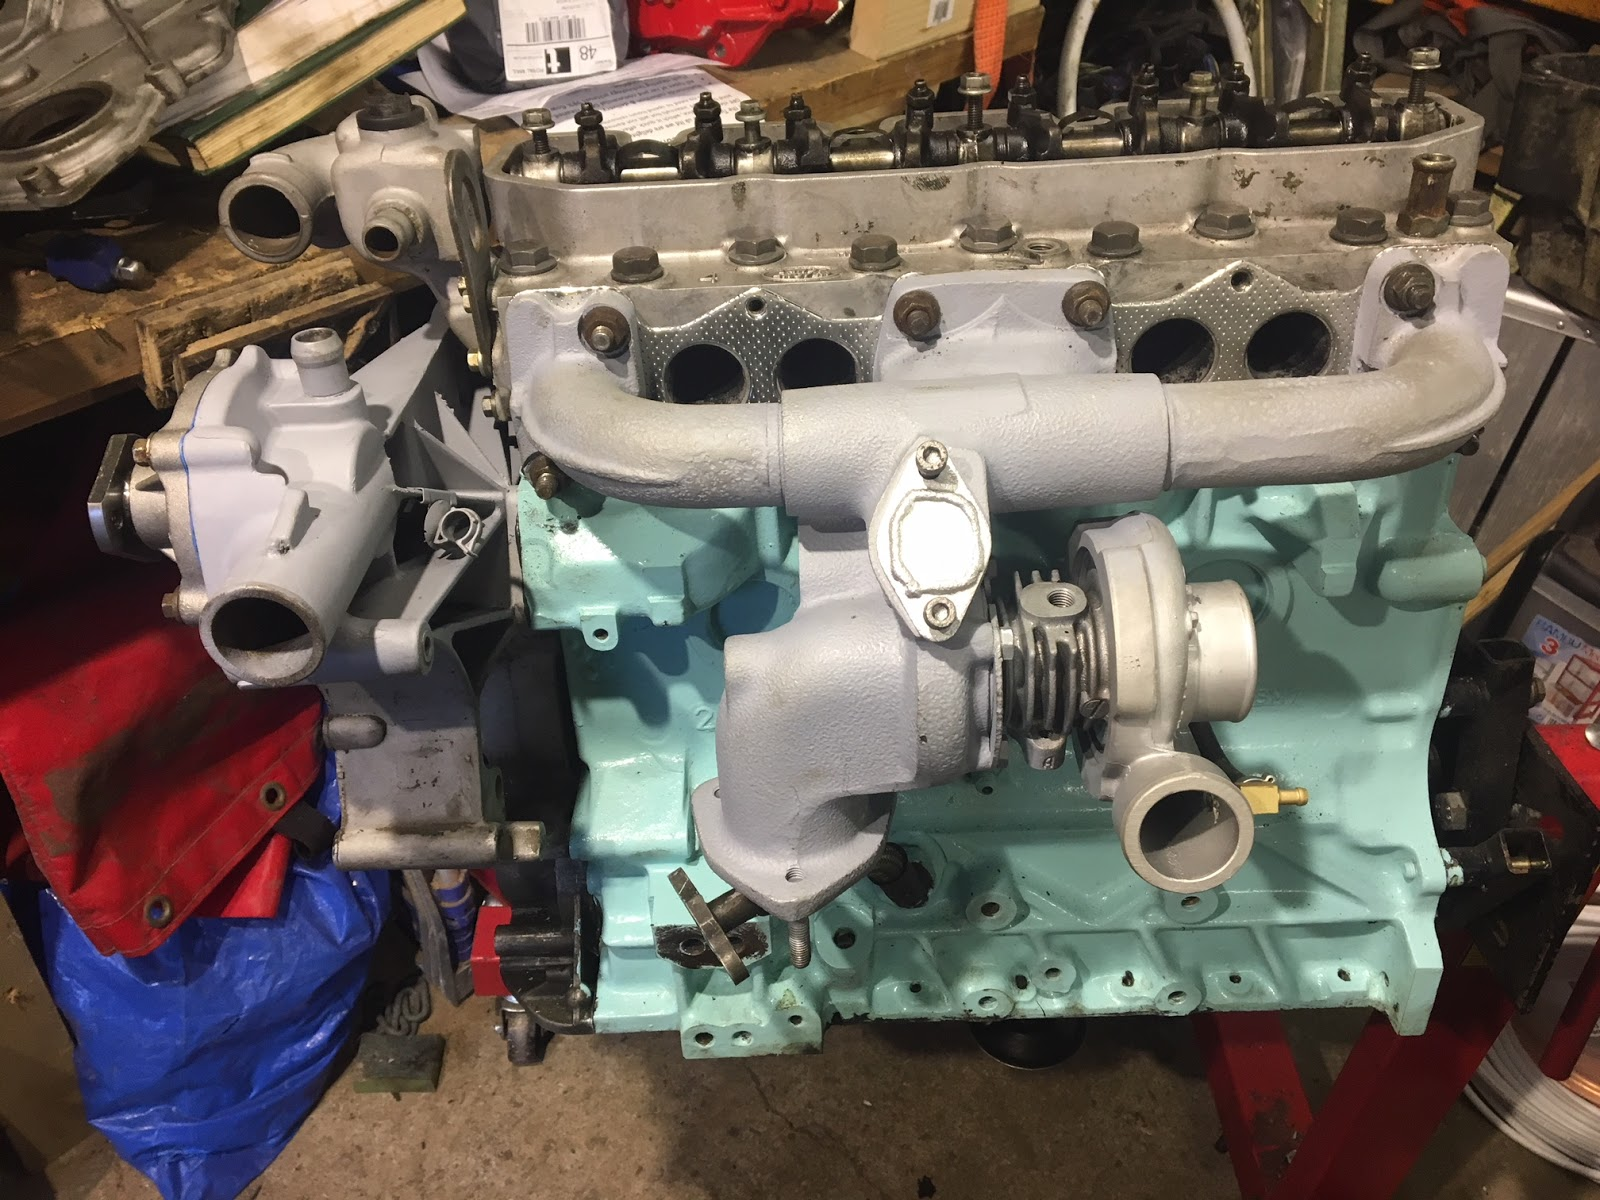 Land Rover Defender 130 Wolf Pulse Ambulance Carburetor The Engine Starts To Look More Like An And Not Just A Pile Of Bits